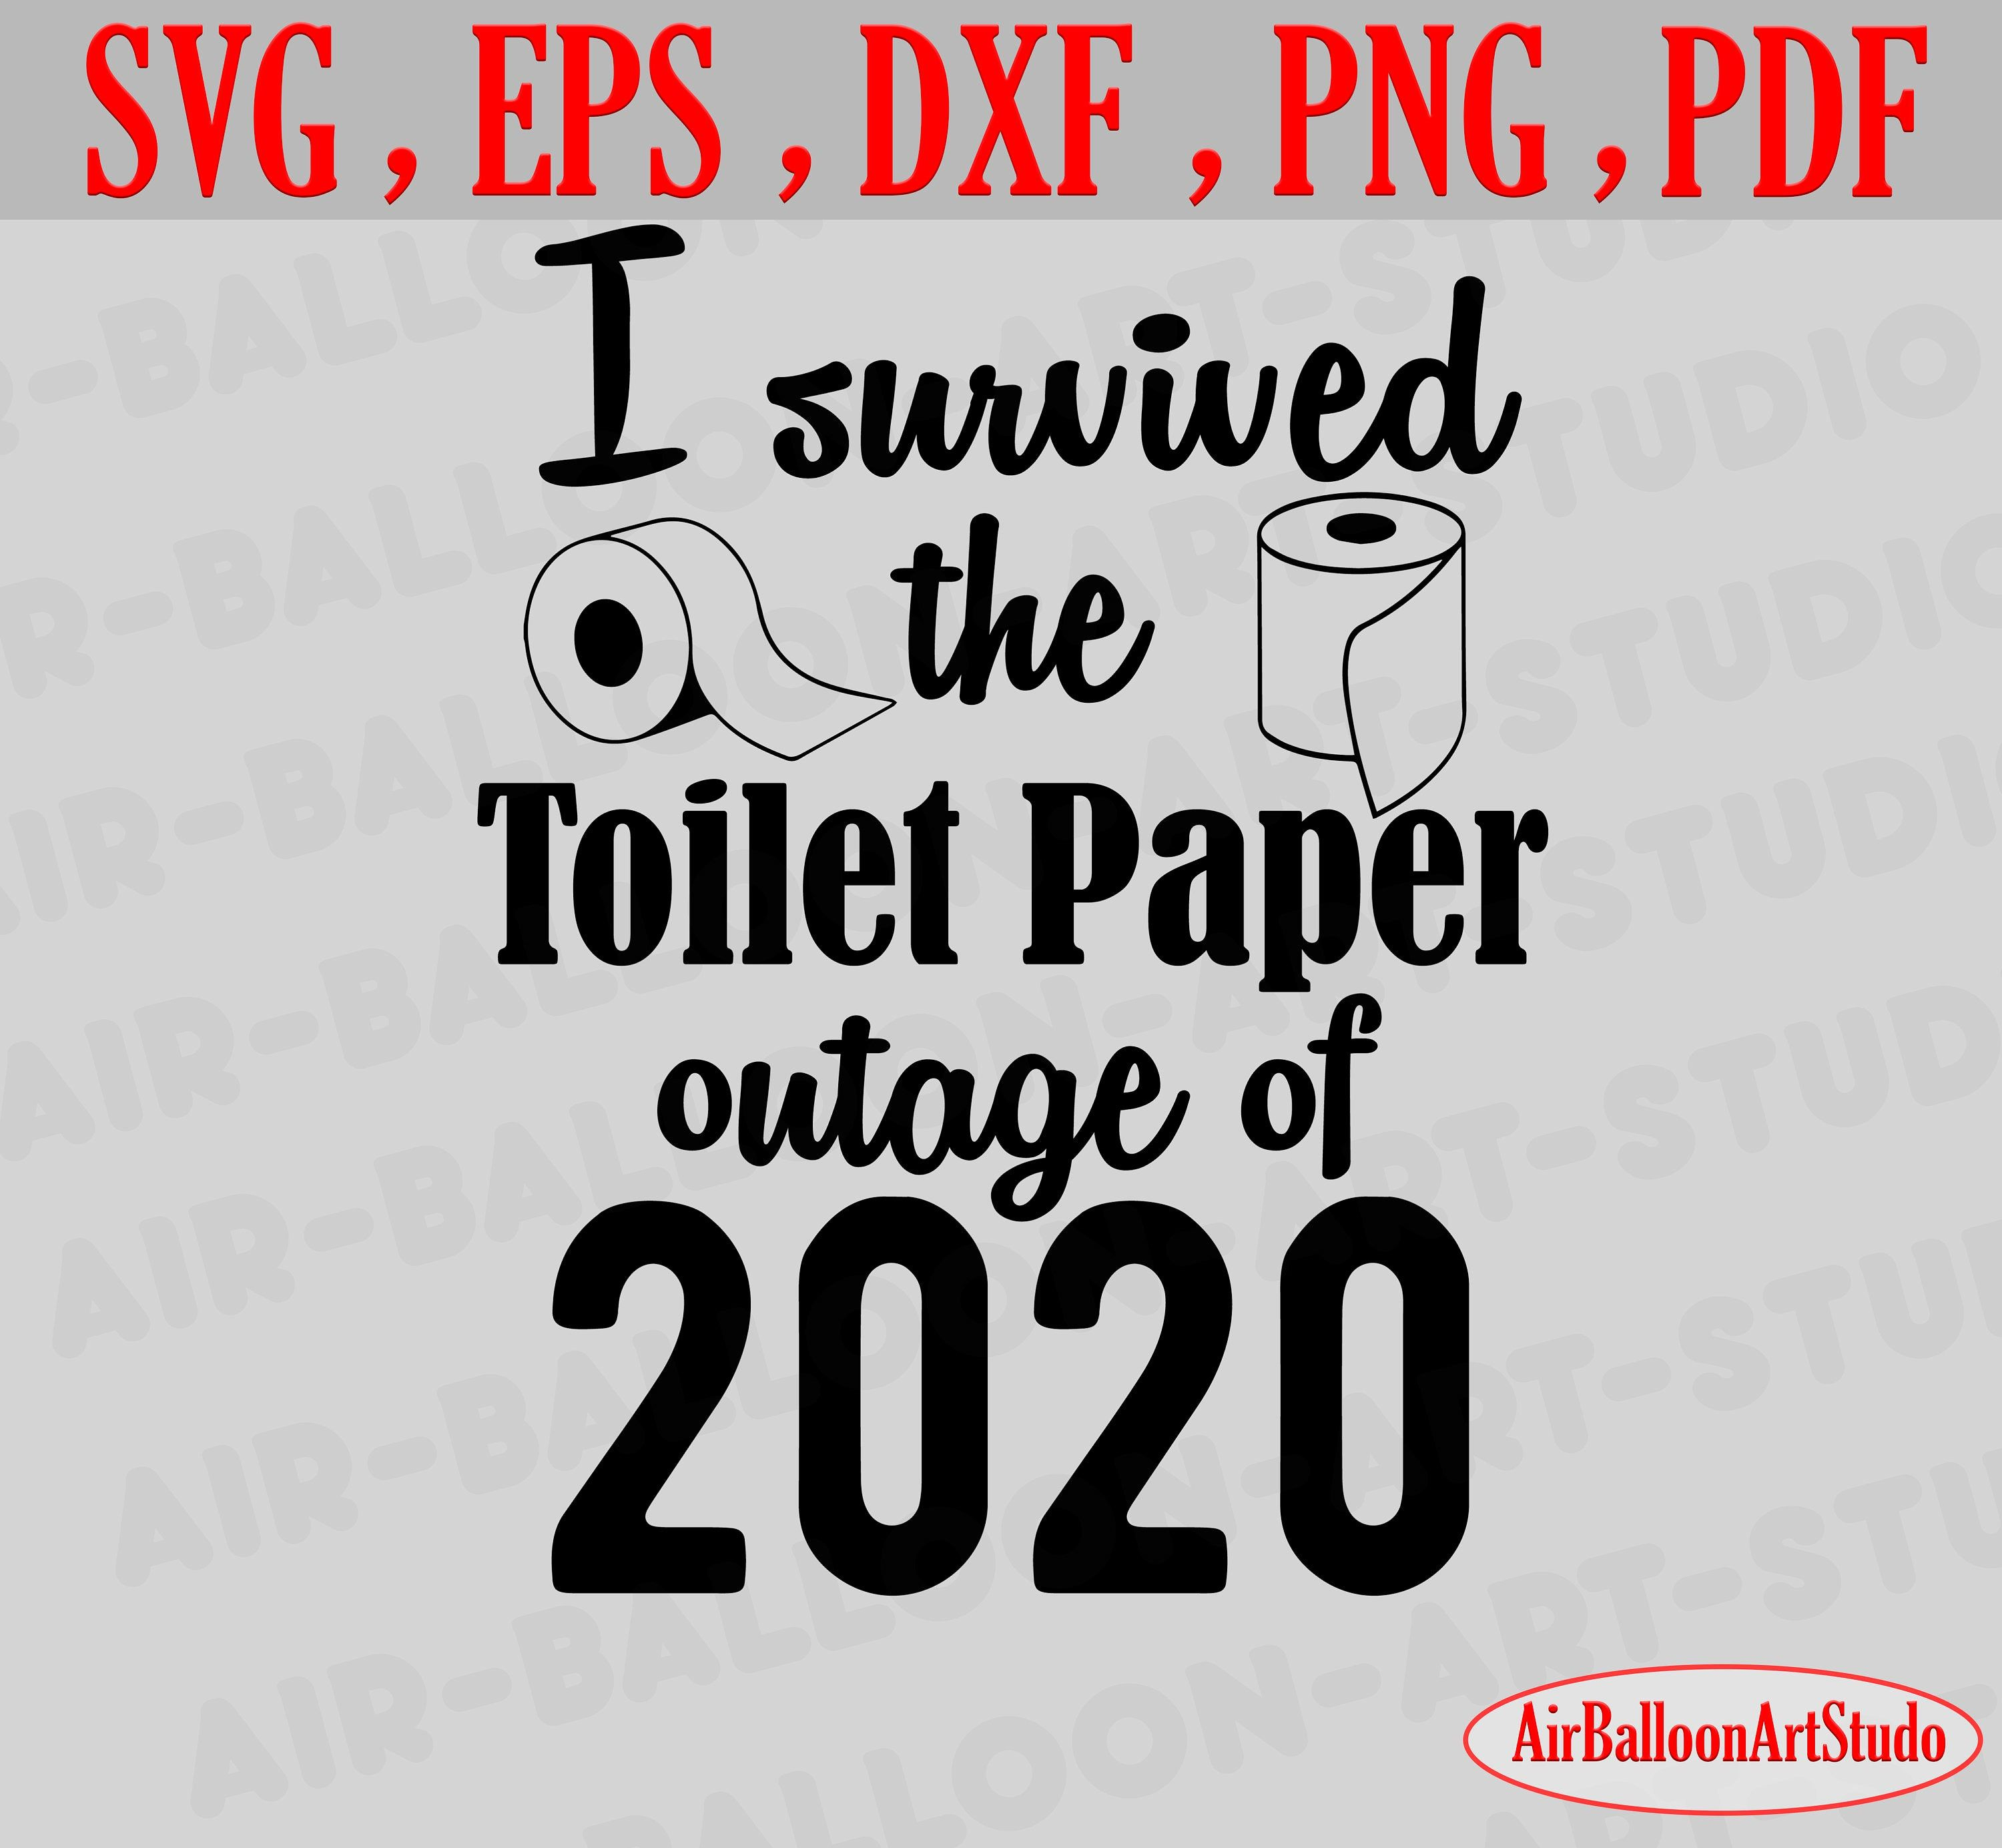 I Survived the Toilet Paper Outage of 2020 SVG Toilet